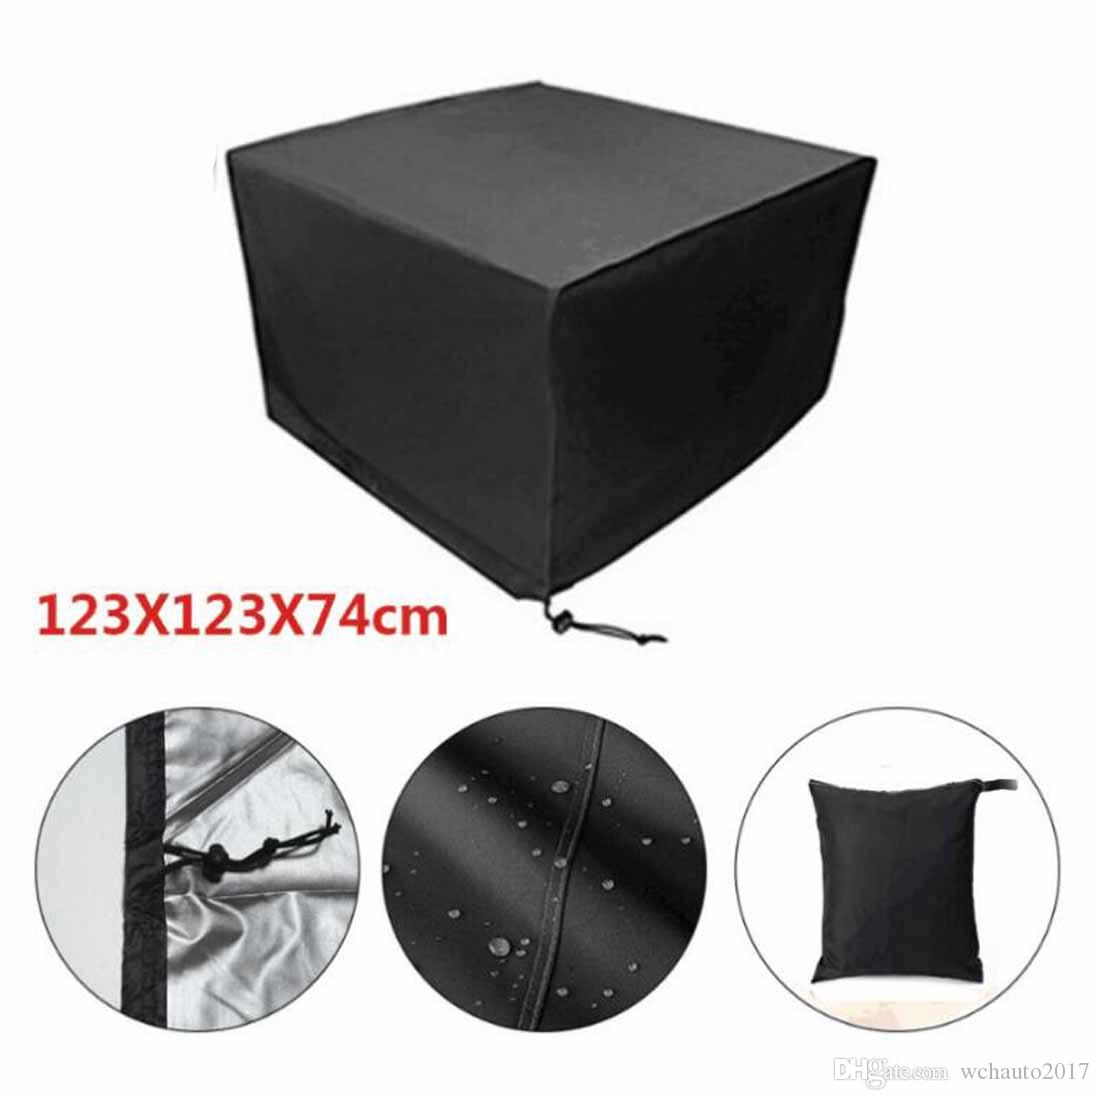 Best Outdoor Furniture Cover Square Black Waterproof Outdoor Garden  Dustproof Table Cover With Storage Bags For Garden 120*120*74cm Under  $11.25 | Dhgate. - Best Outdoor Furniture Cover Square Black Waterproof Outdoor Garden